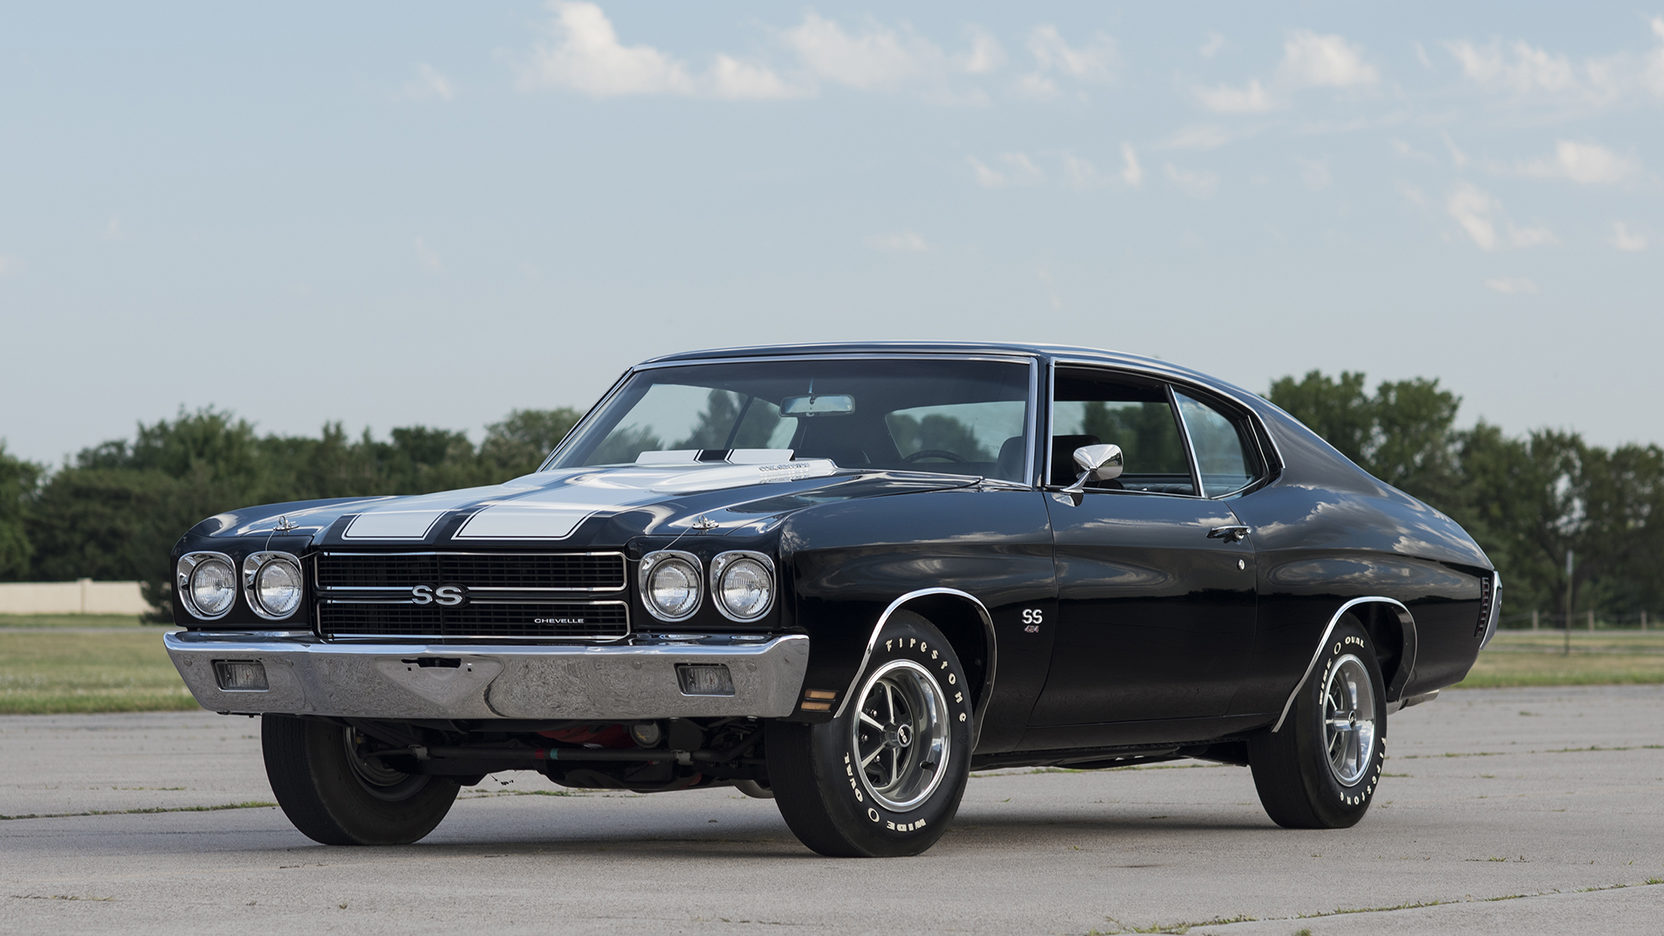 The Hottest Chevy Muscle Cars To Buy That Aren T Camaros Motoring Research